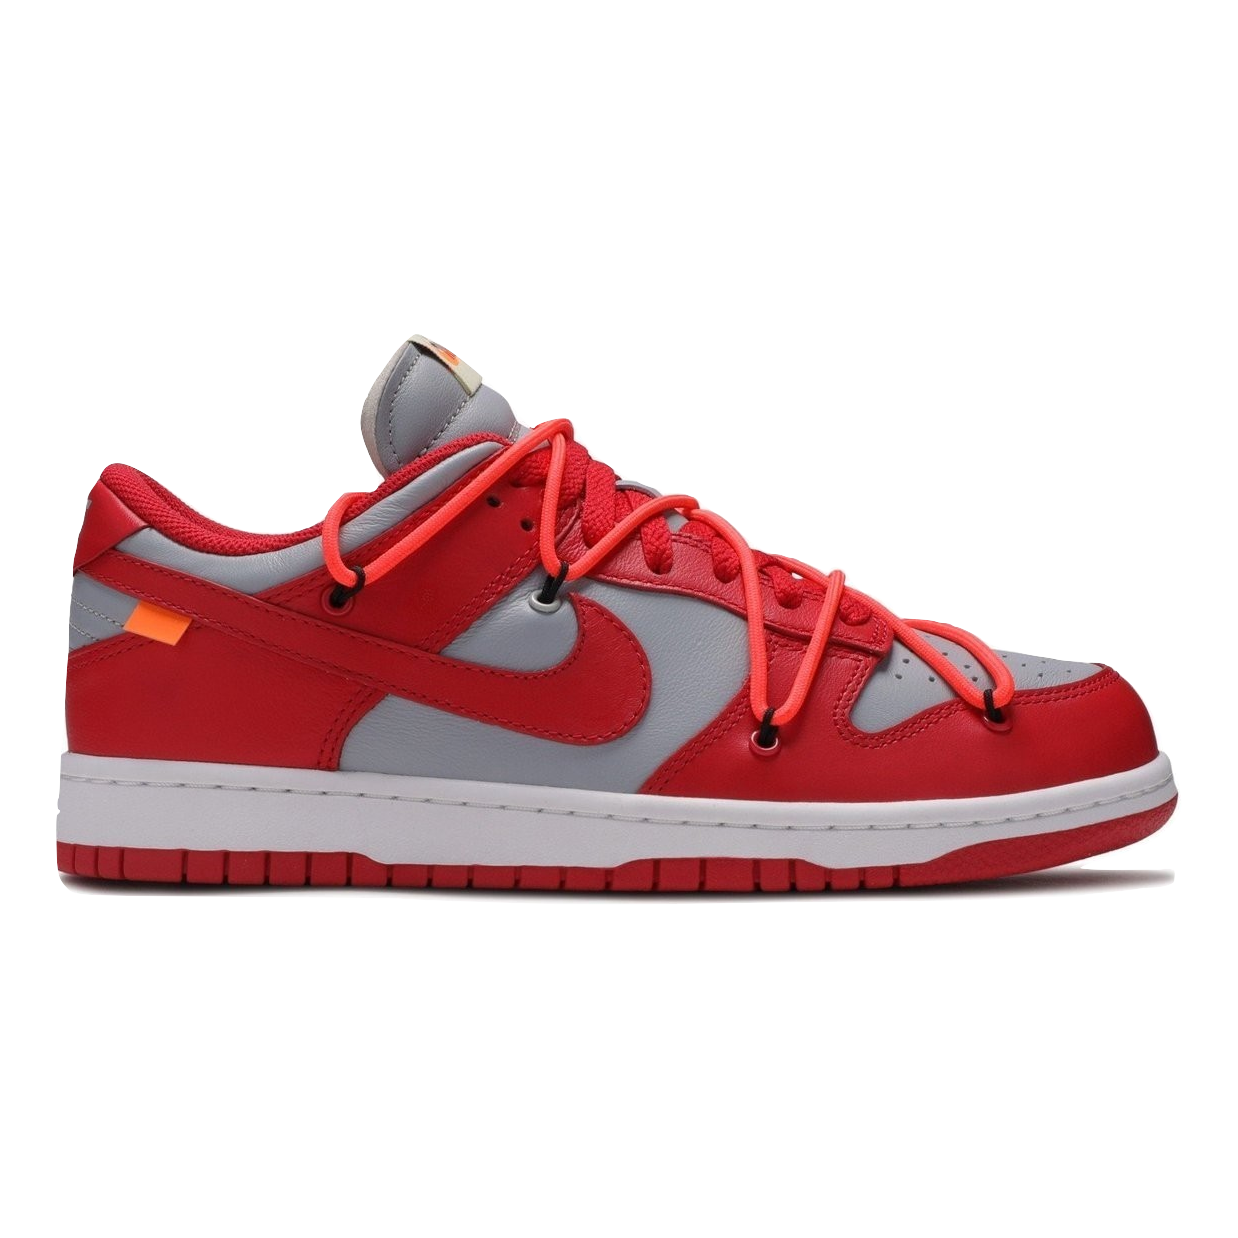 Nike Dunk Low LTHR / OW - University Red - Used